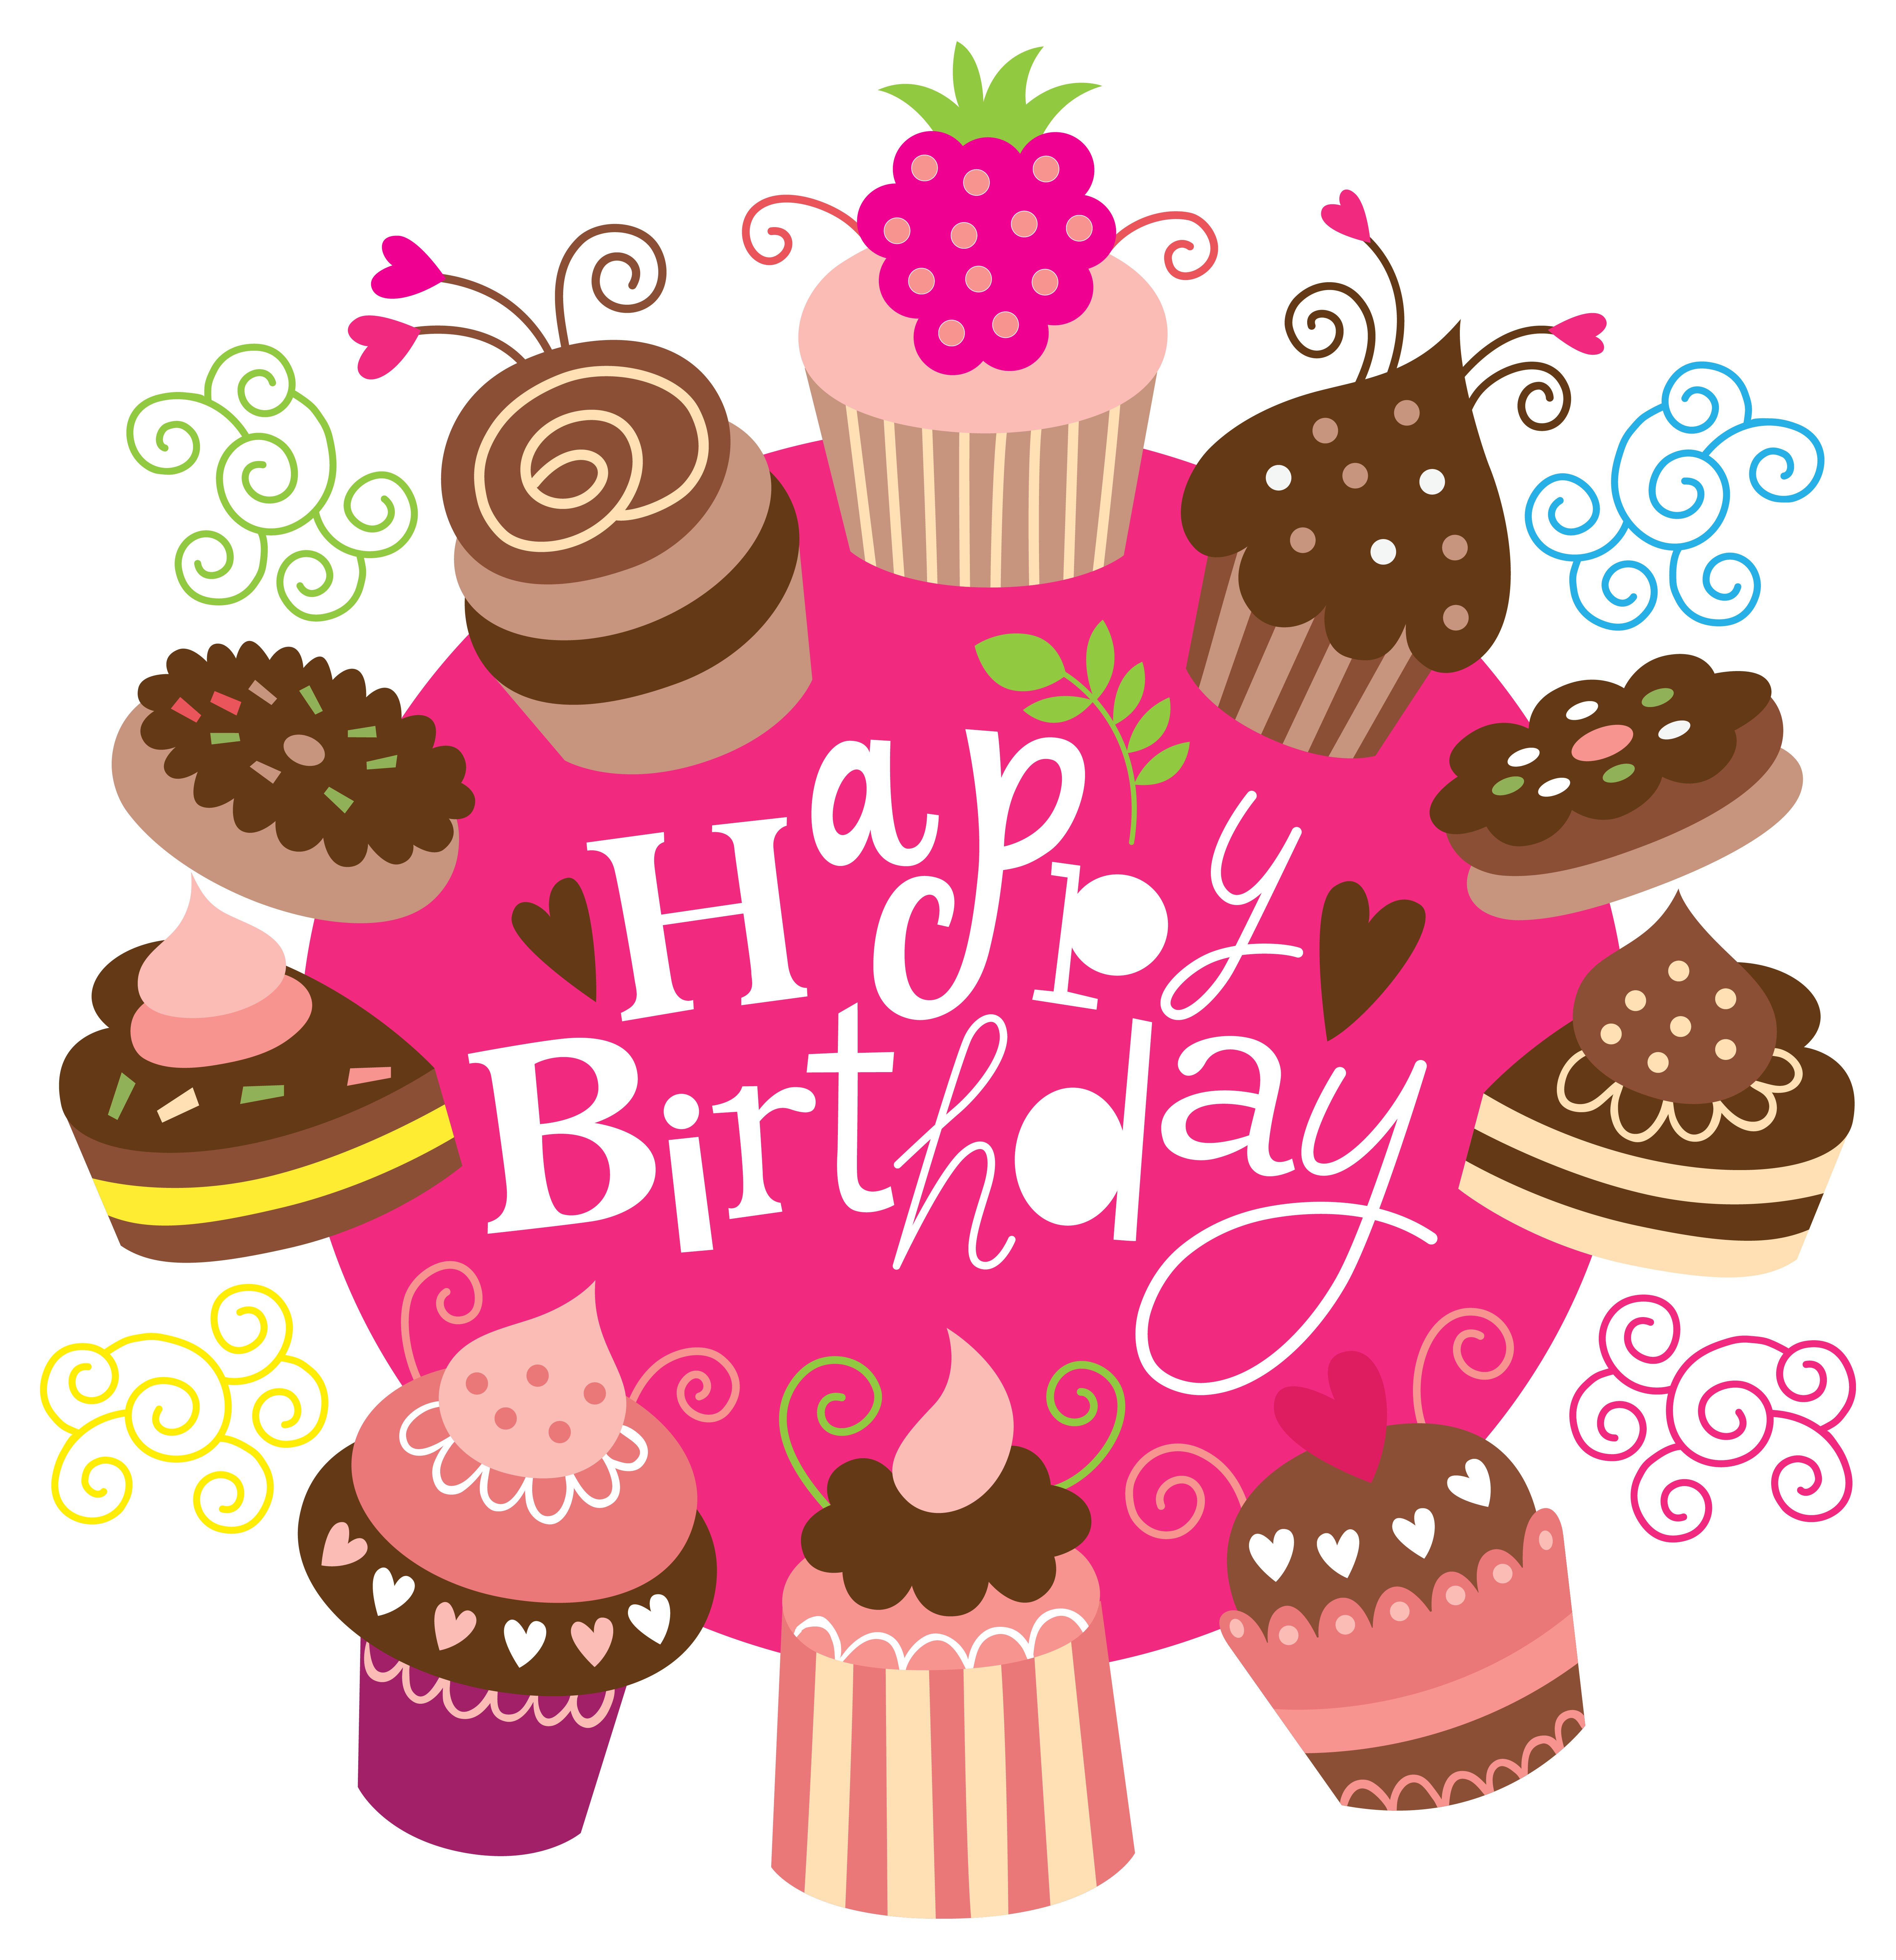 Happy with cakes image. Clipart birthday thanksgiving